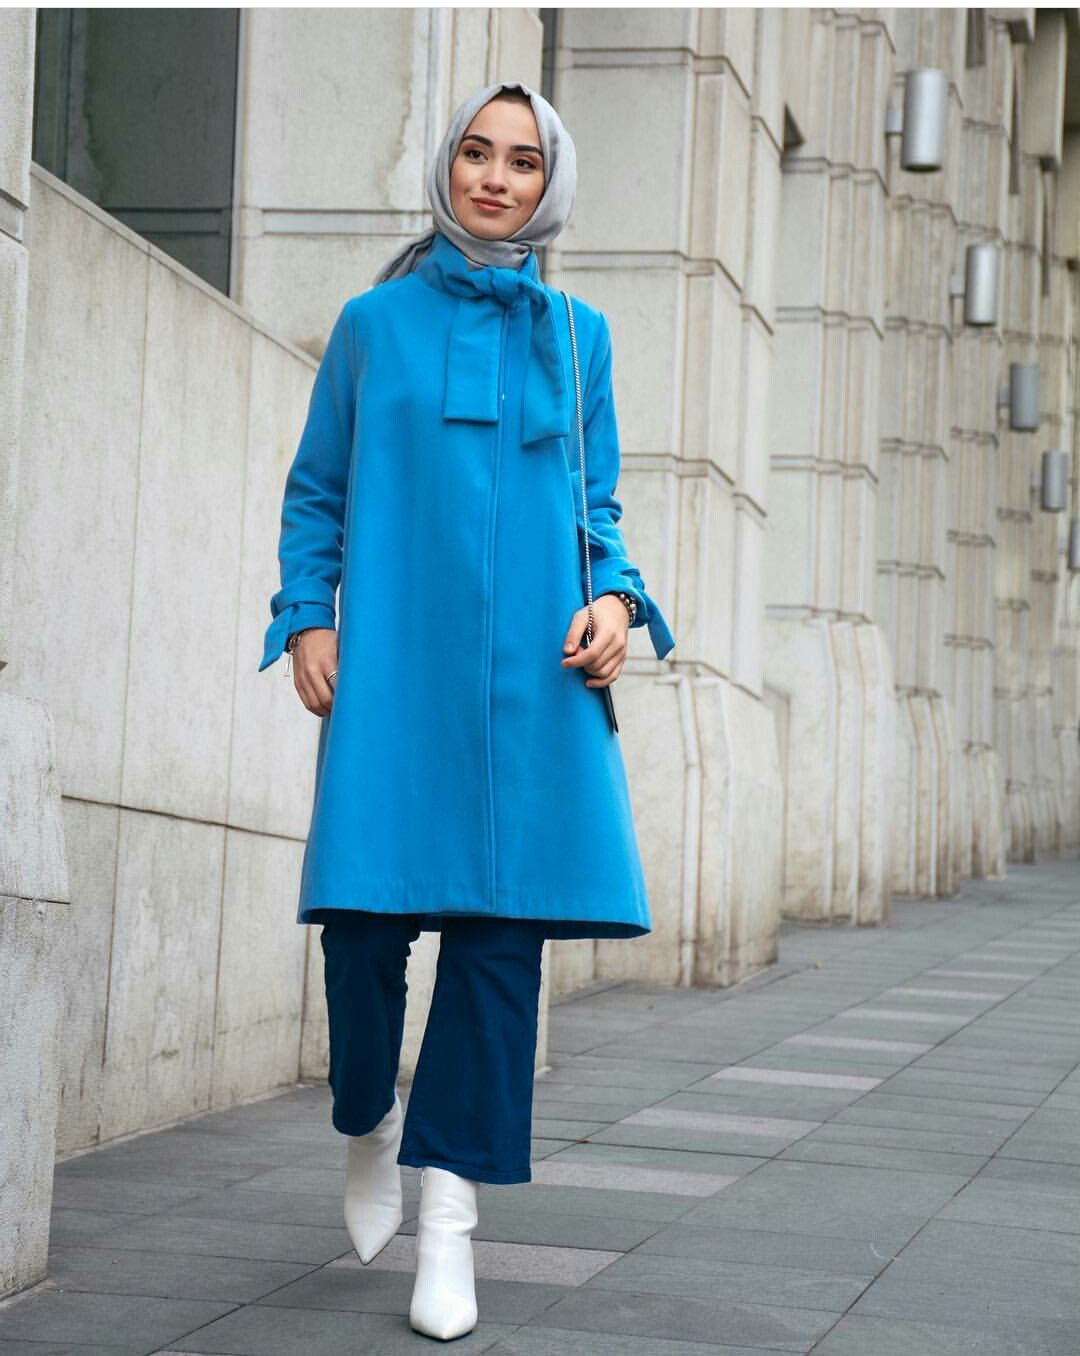 Love this | MN | Pinterest | Hijabs, Moslem fashion and Muslim dress